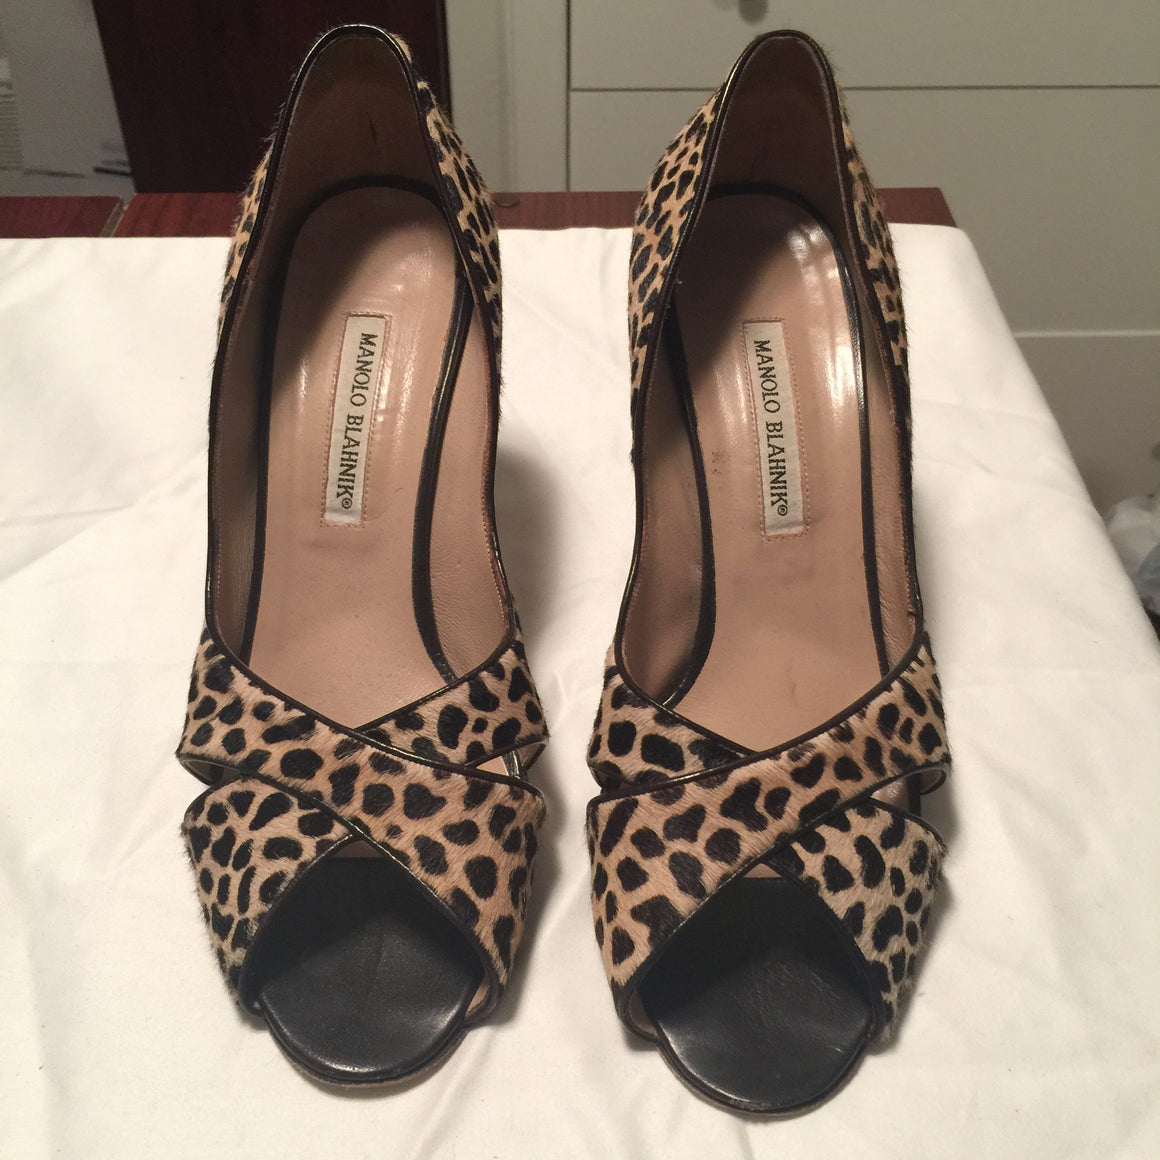 Manolo Blahnik Pumps - New York Authentic Designer - Manolo Blahnik